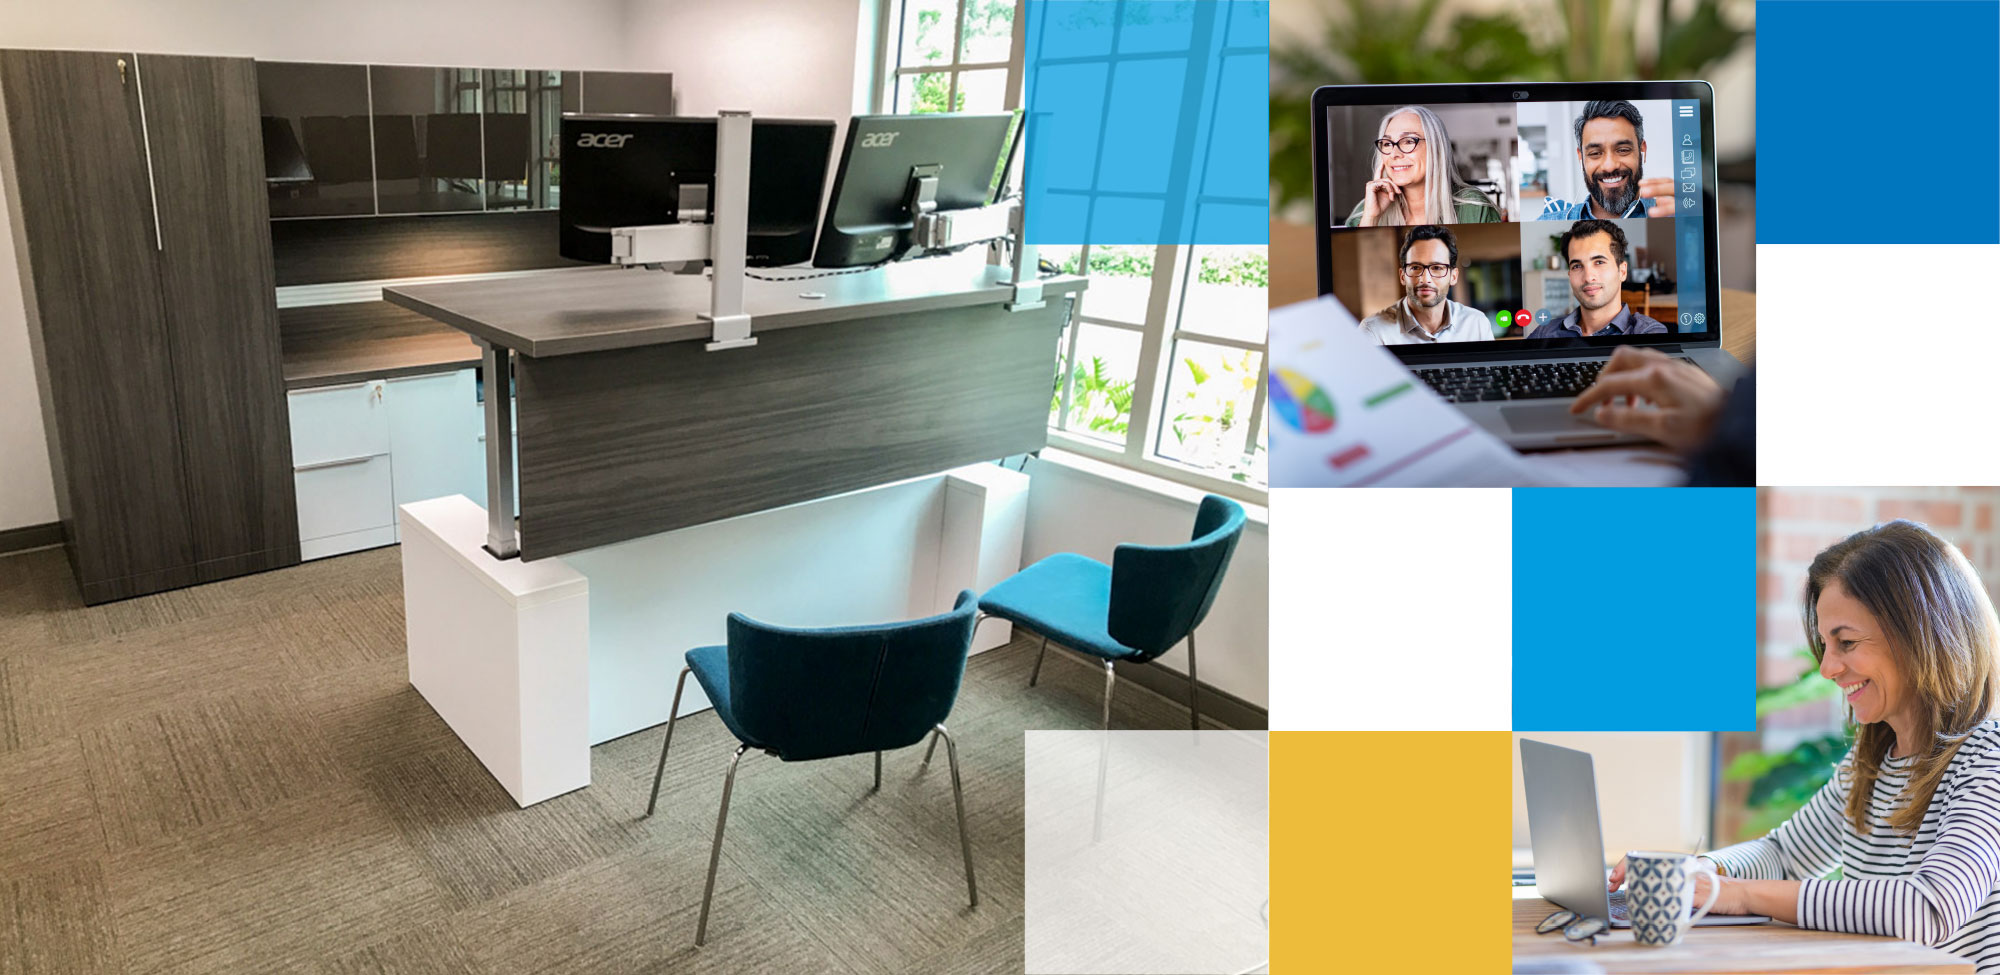 Header image with standing desk design by OFDC Commercial Interiors with 2 chairs while woman virtually meets with coworkers